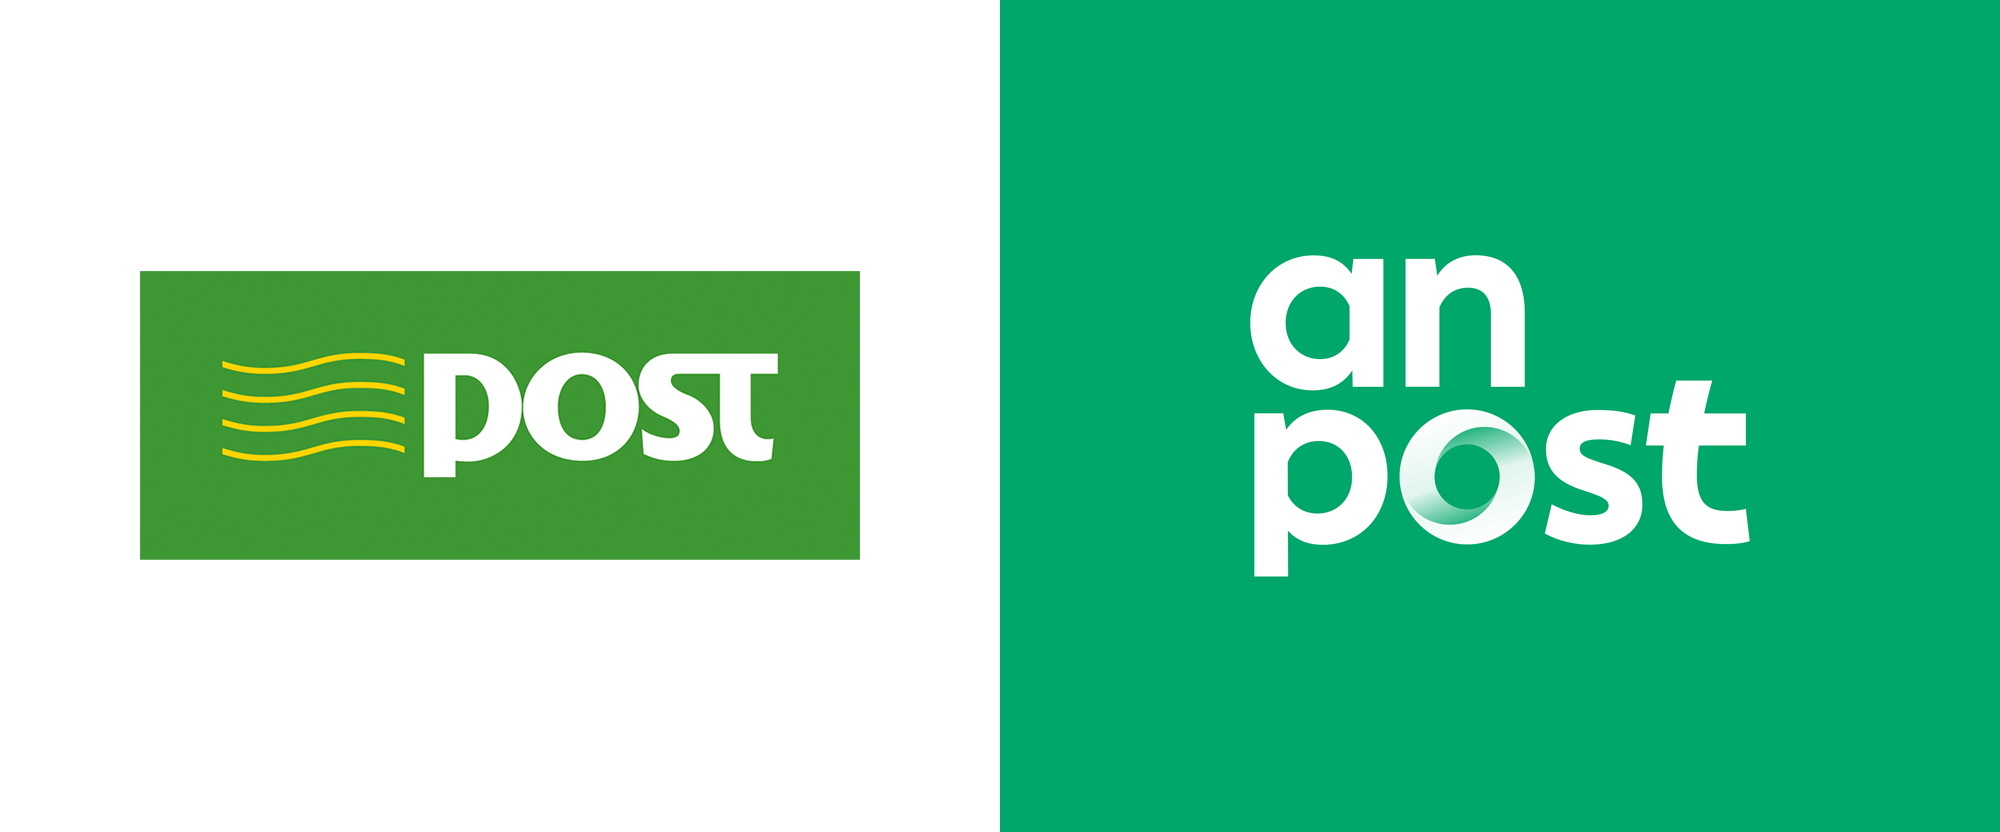 New Logo and Identity for An Post by Image Now